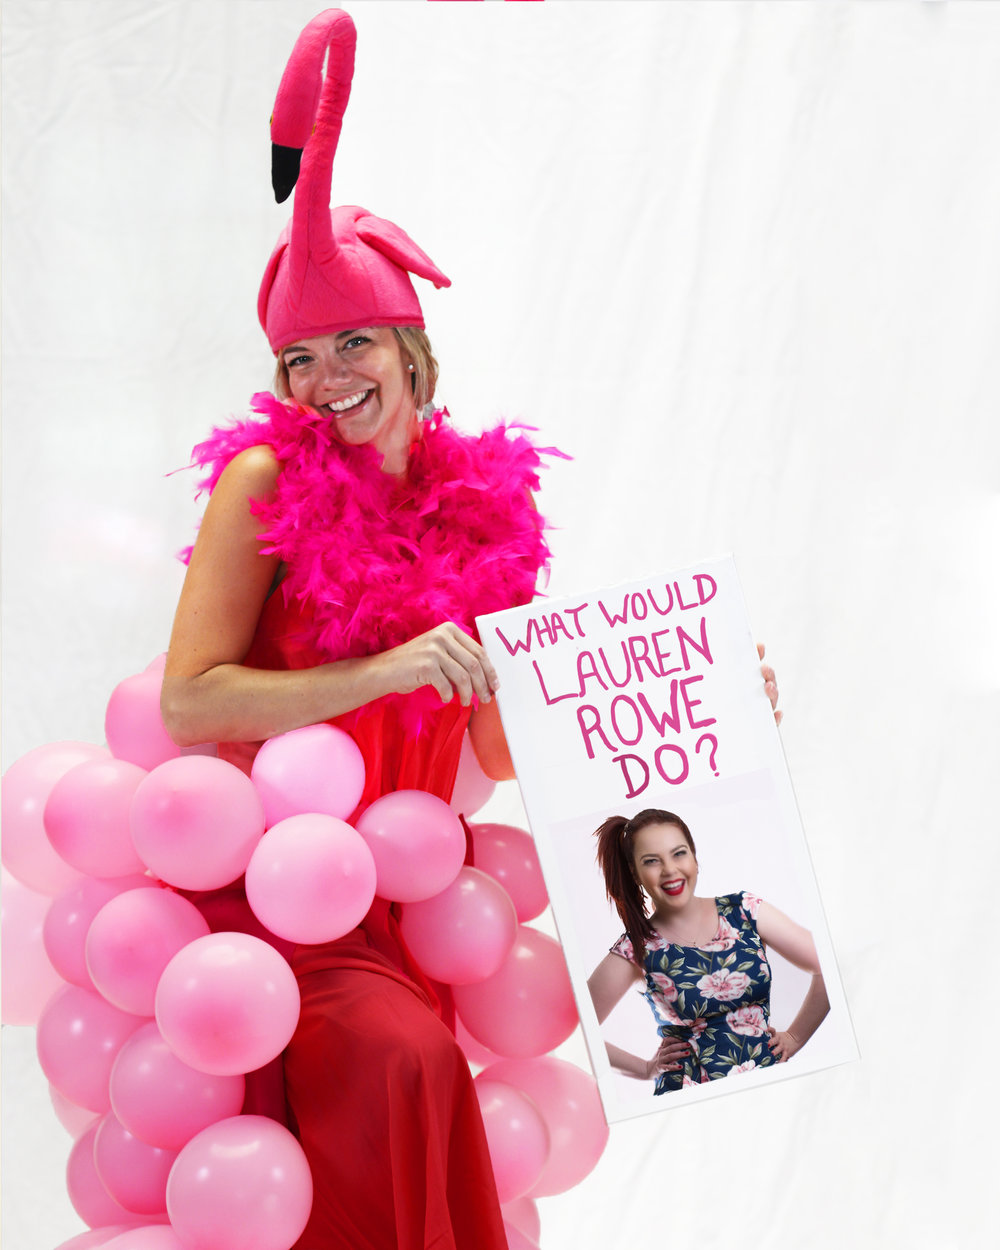 If you had 75 pink balloons, what would you do? - be sexy, what else...(Lauren Rowe)